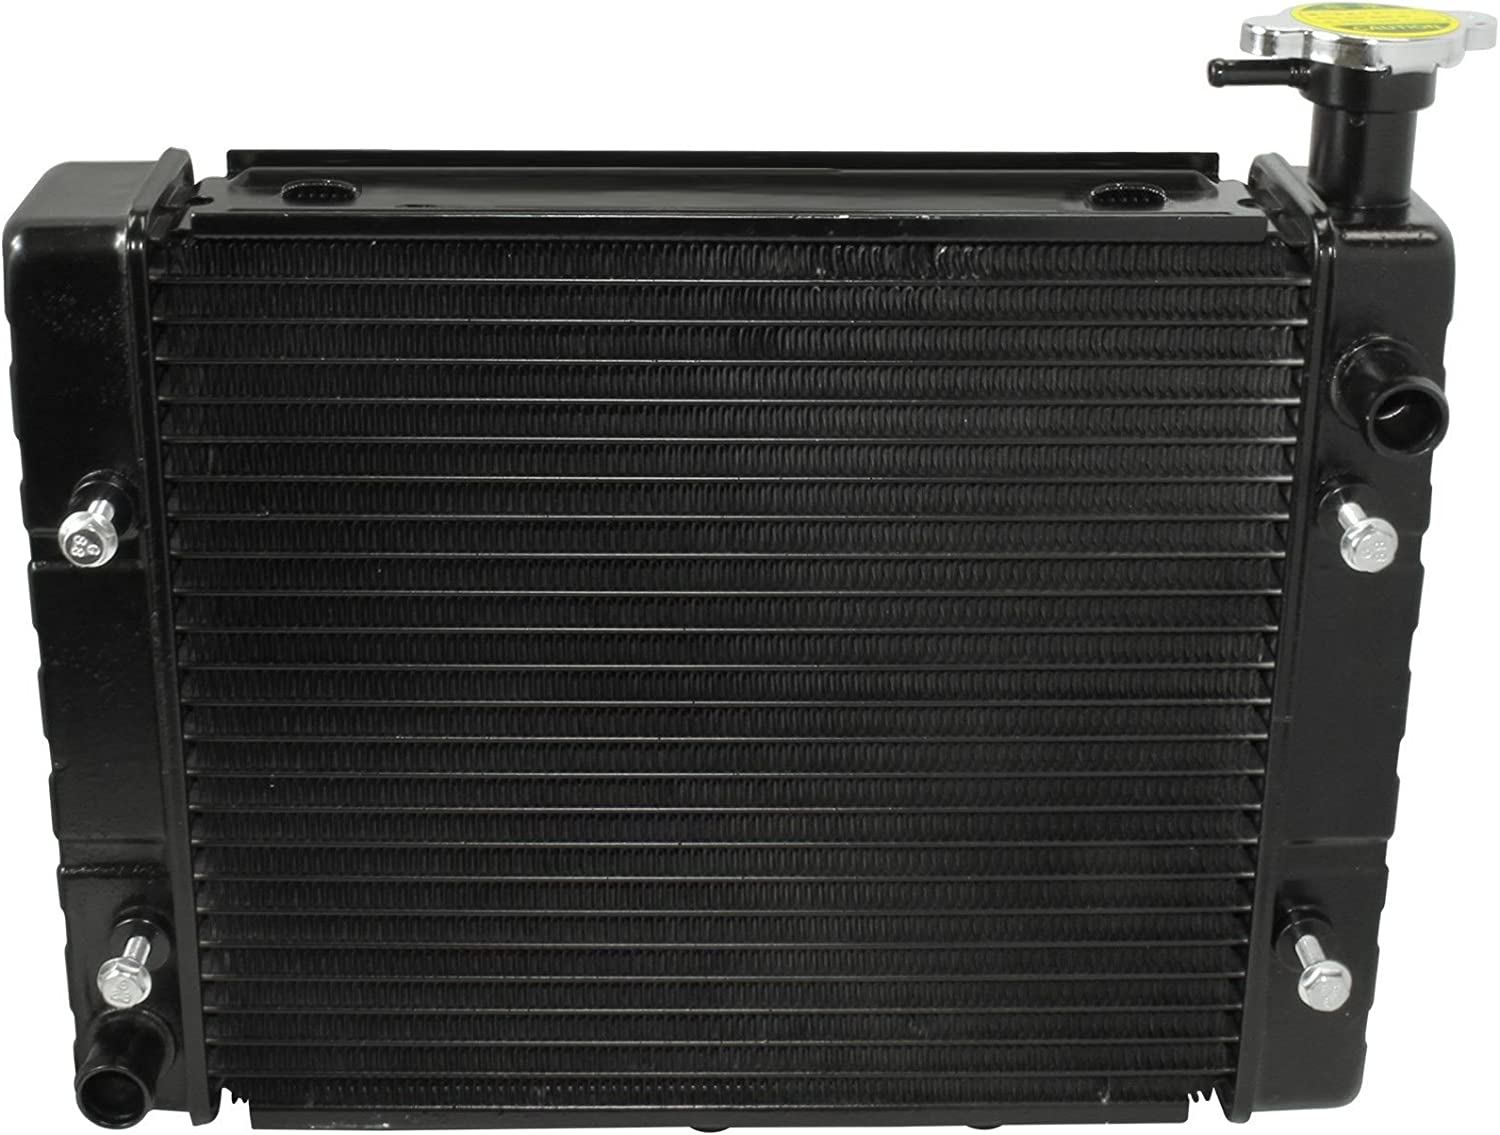 RADIATOR Fits CAN-AM OUTLANDER MAX 500 4X4 2007 2008 2009 2010 2011 2012